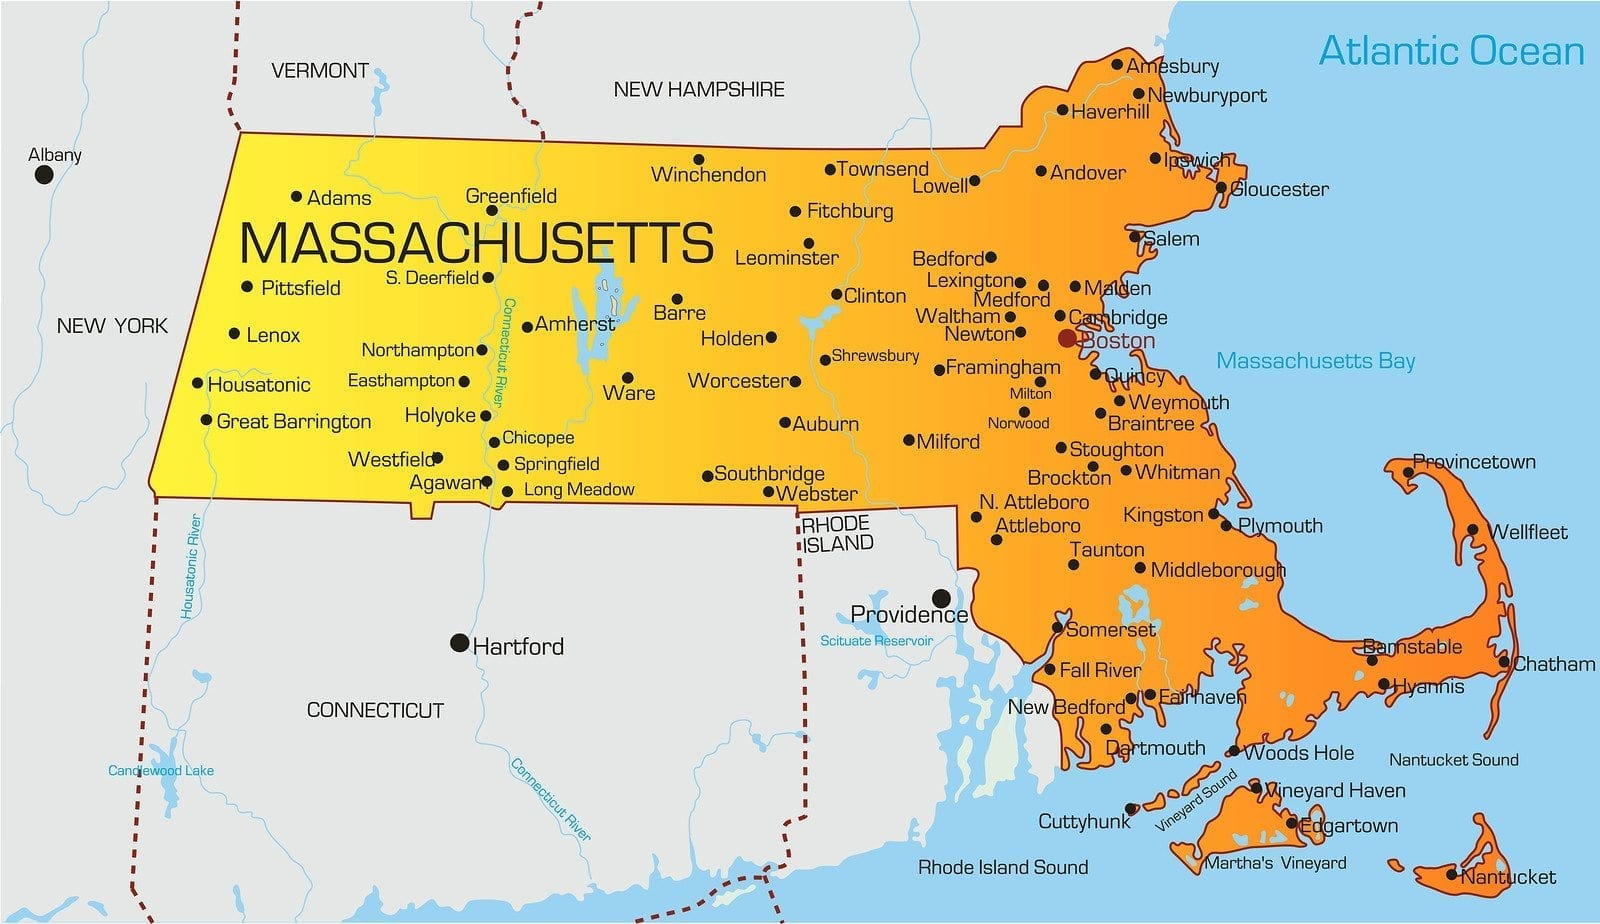 Massachusetts LPN Requirements and Training Programs